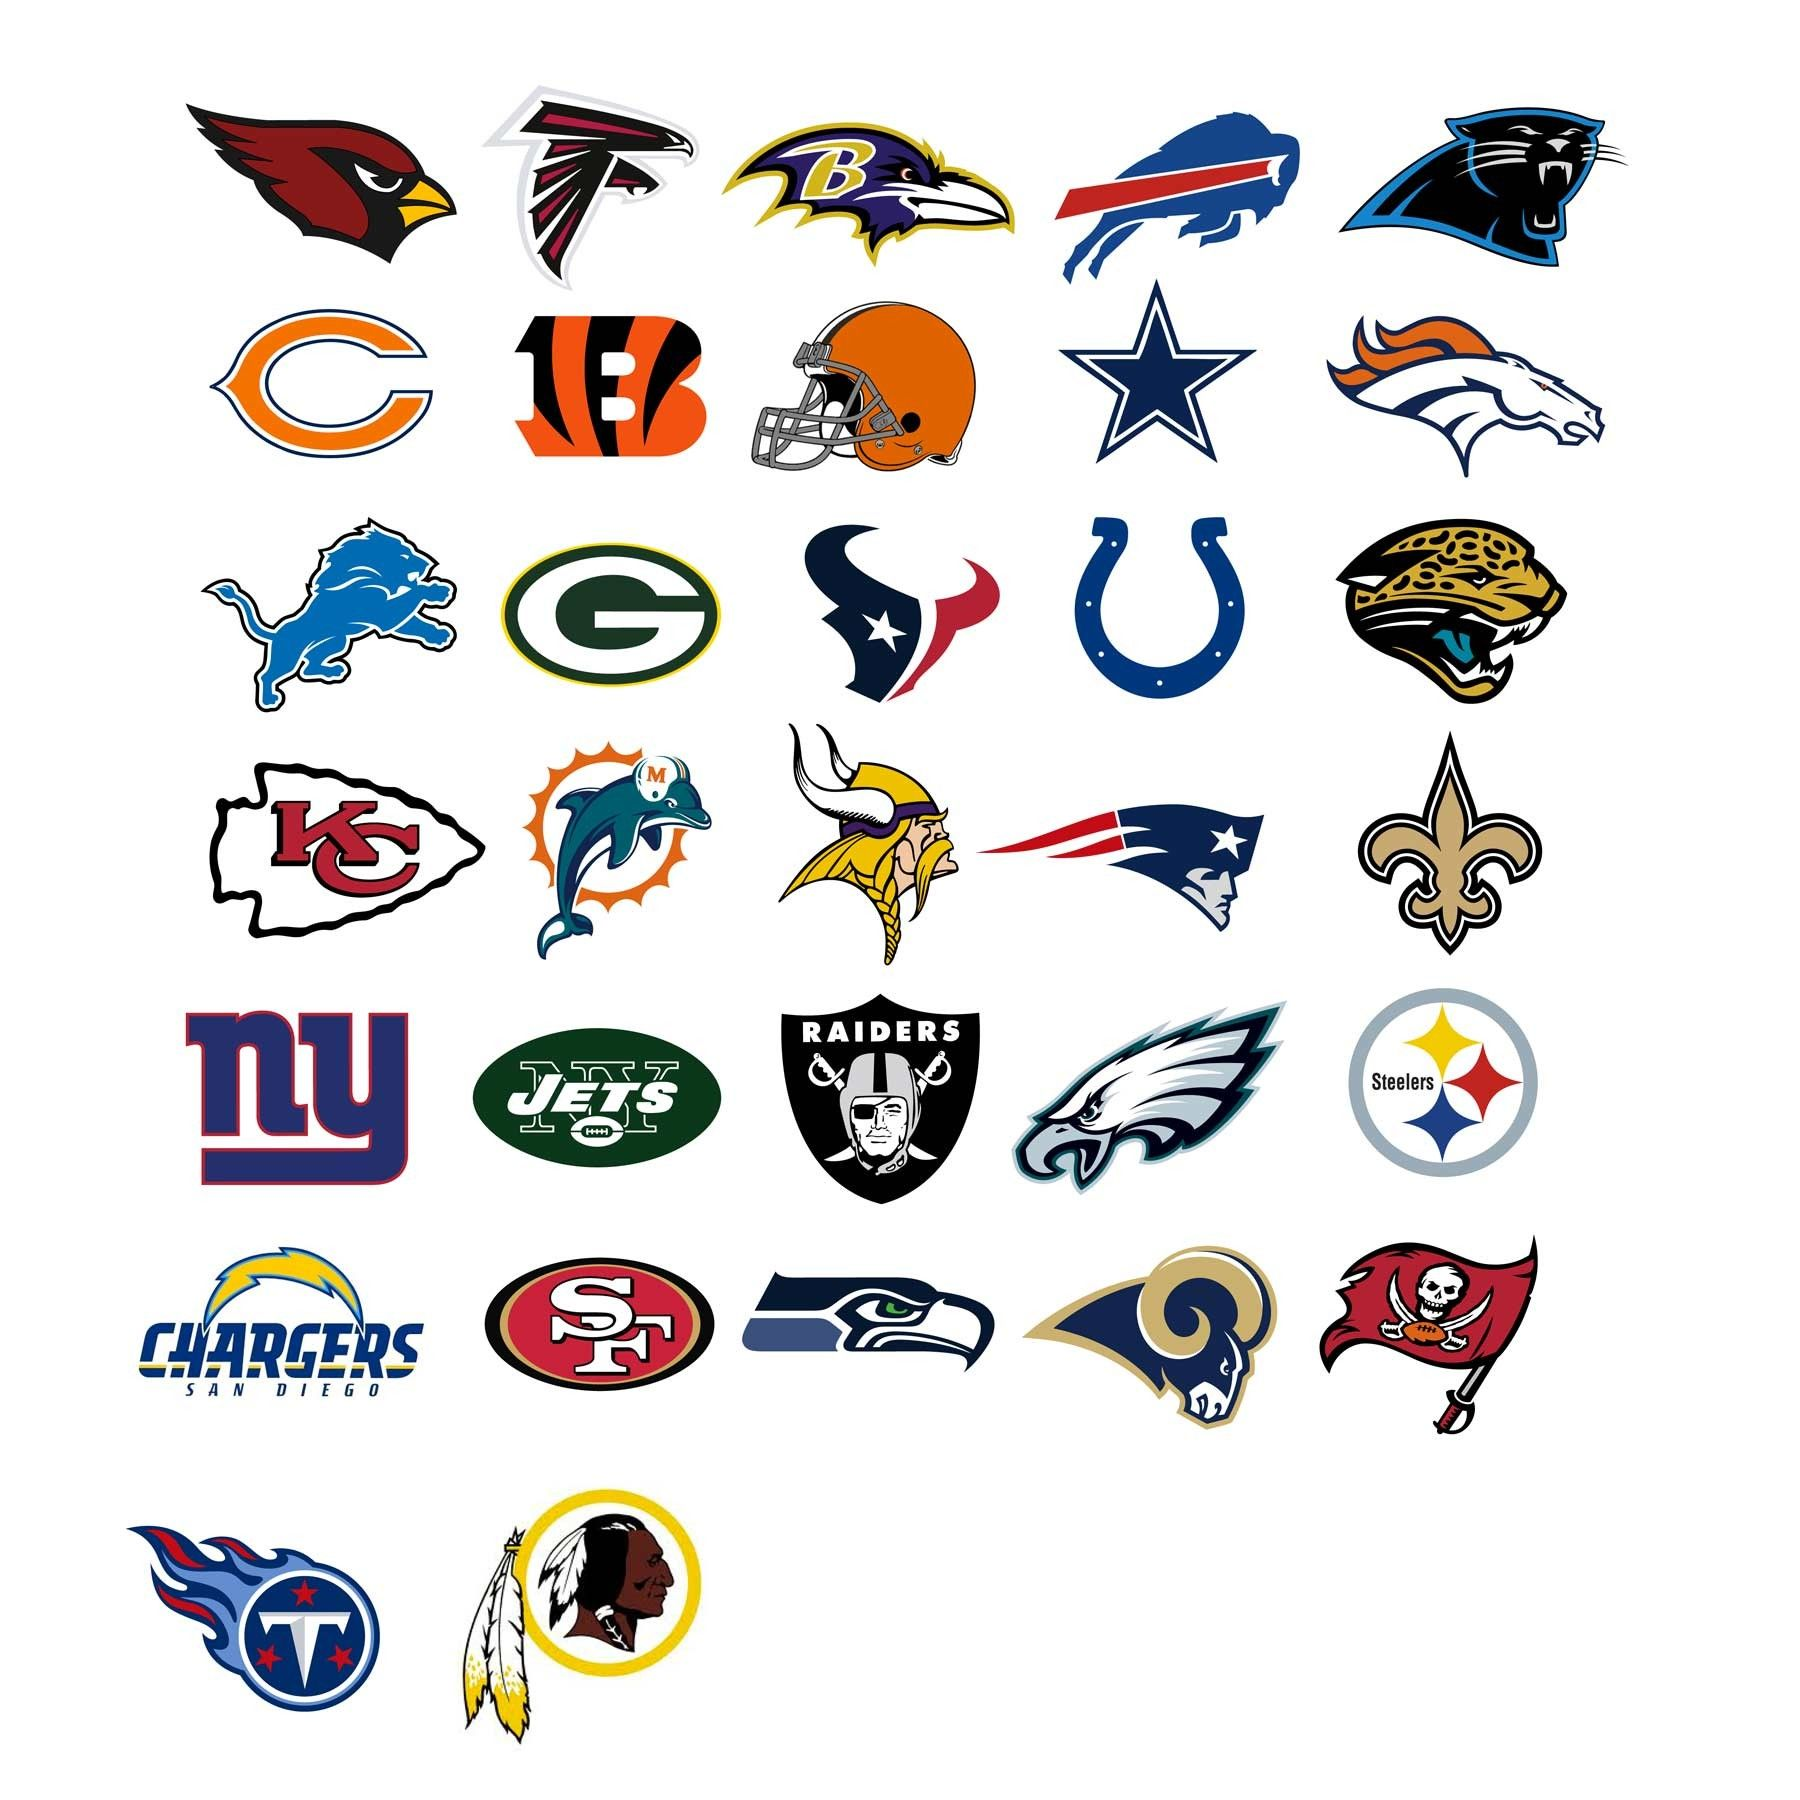 Take a look at the team logos of the NFL (National